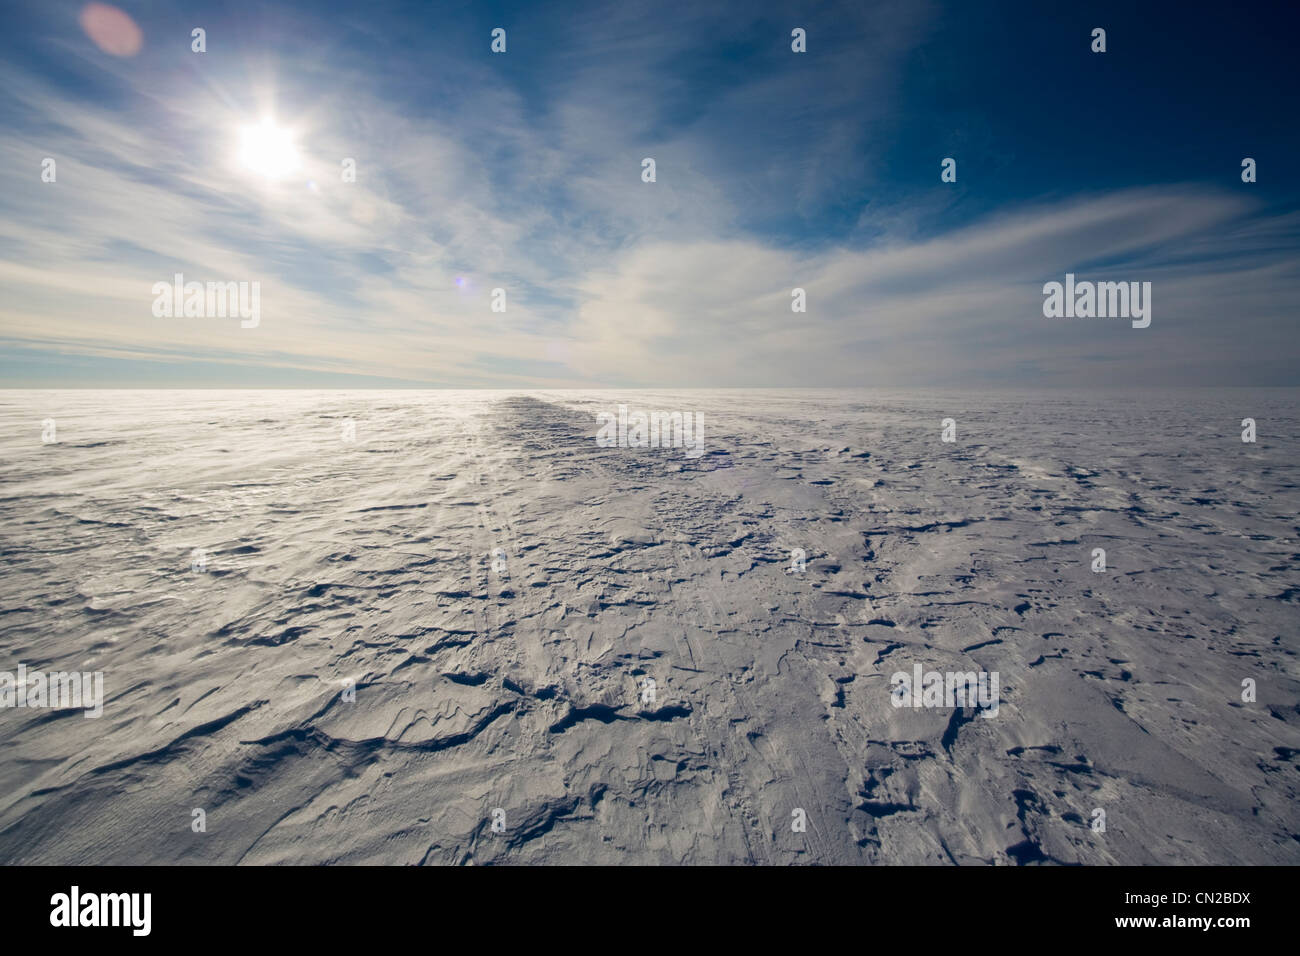 Paysage arctique toundra polaire - ice cap, Groenland Photo Stock